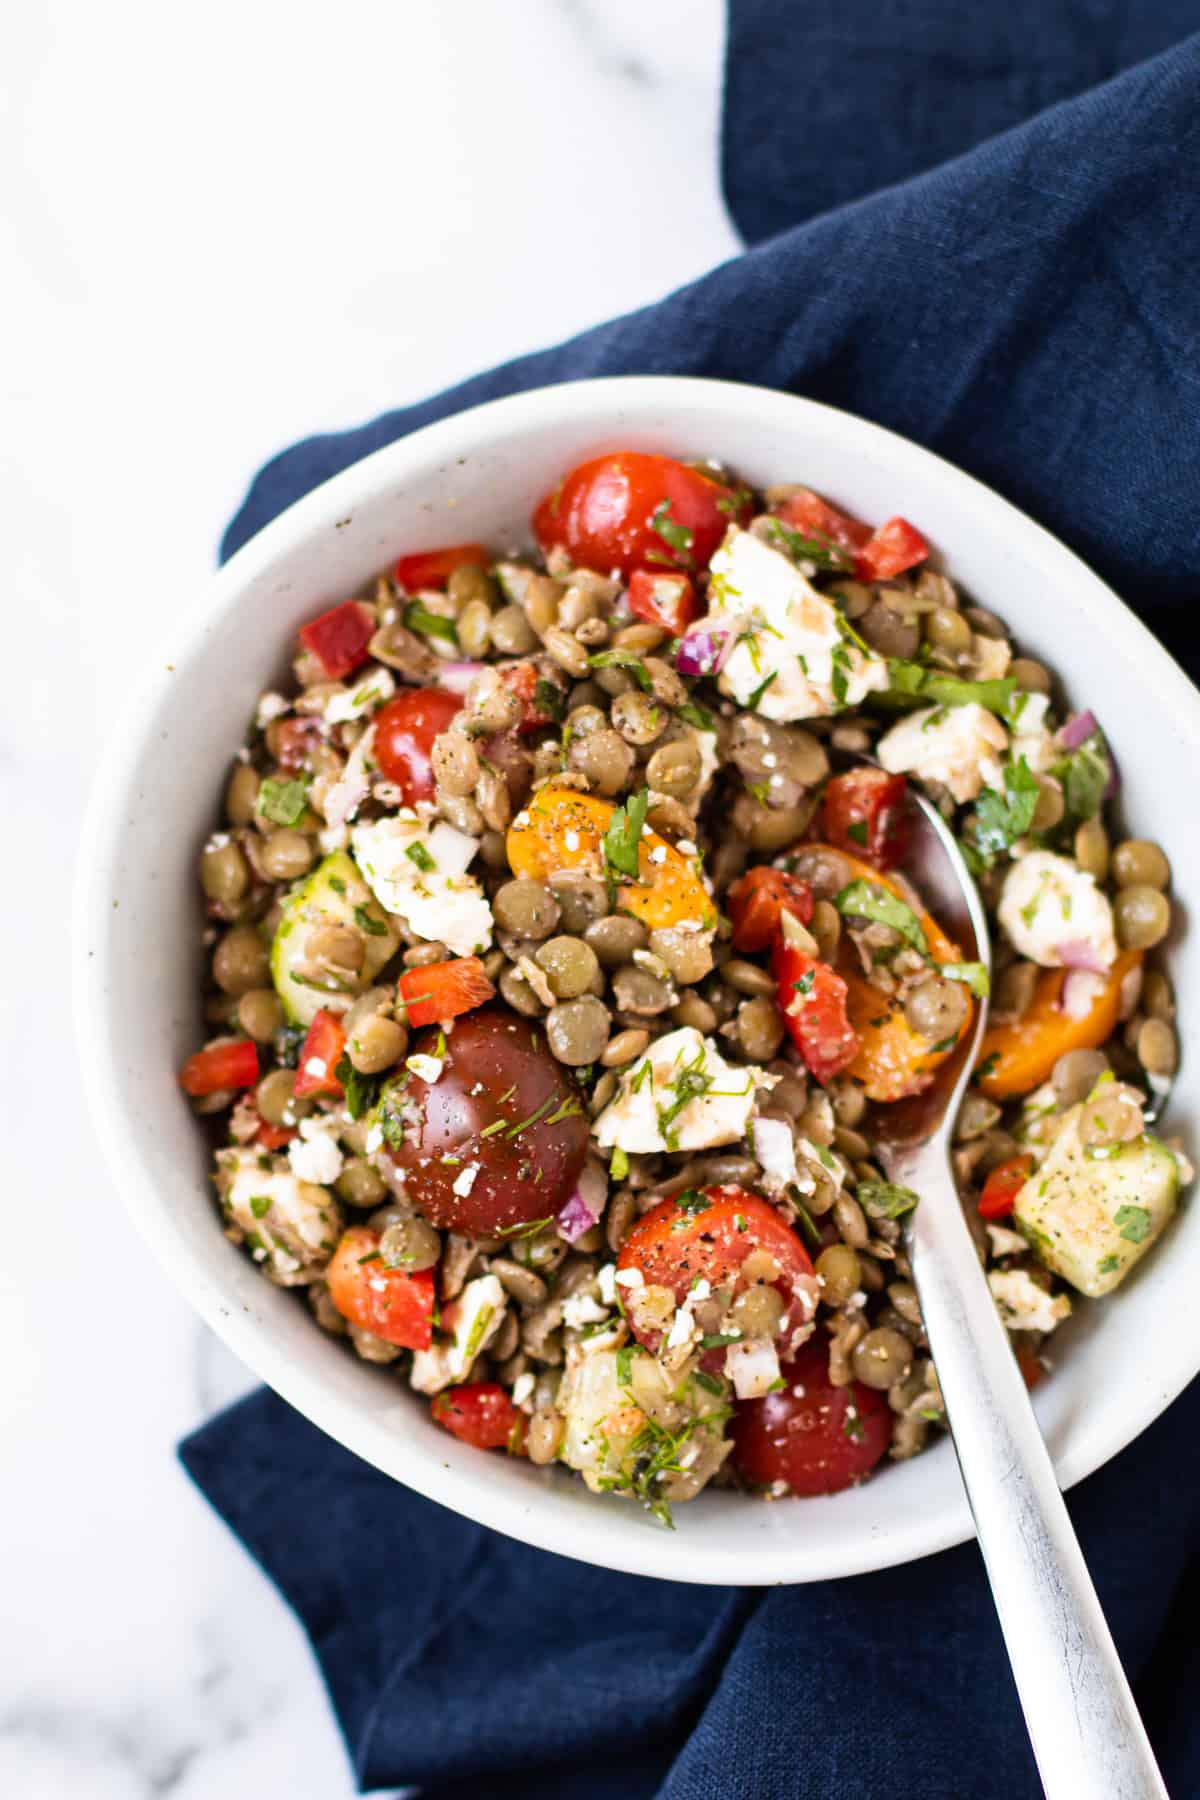 Greek lentil salad with tomatoes and feta.